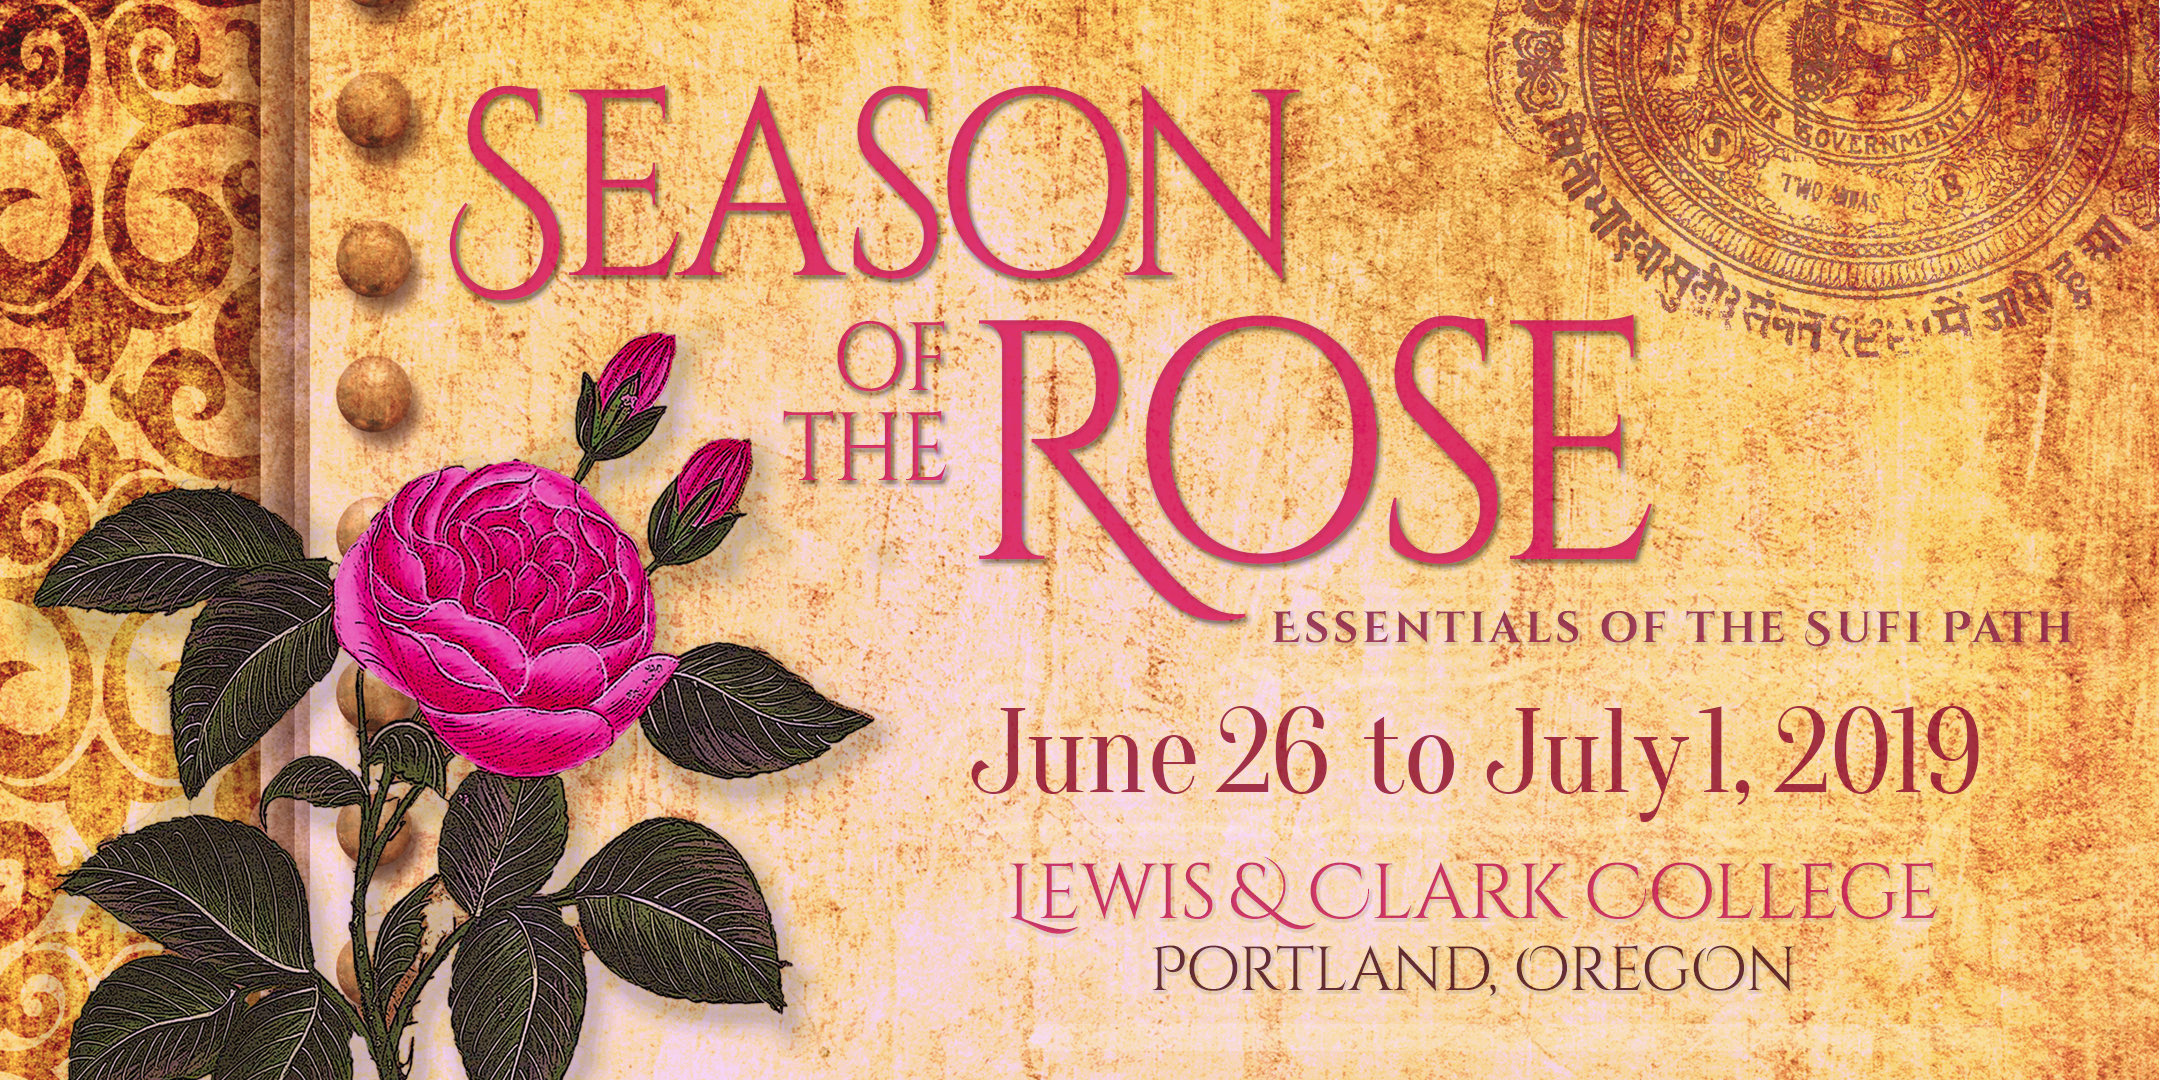 Season of the Rose: Essentials of the Sufi Path